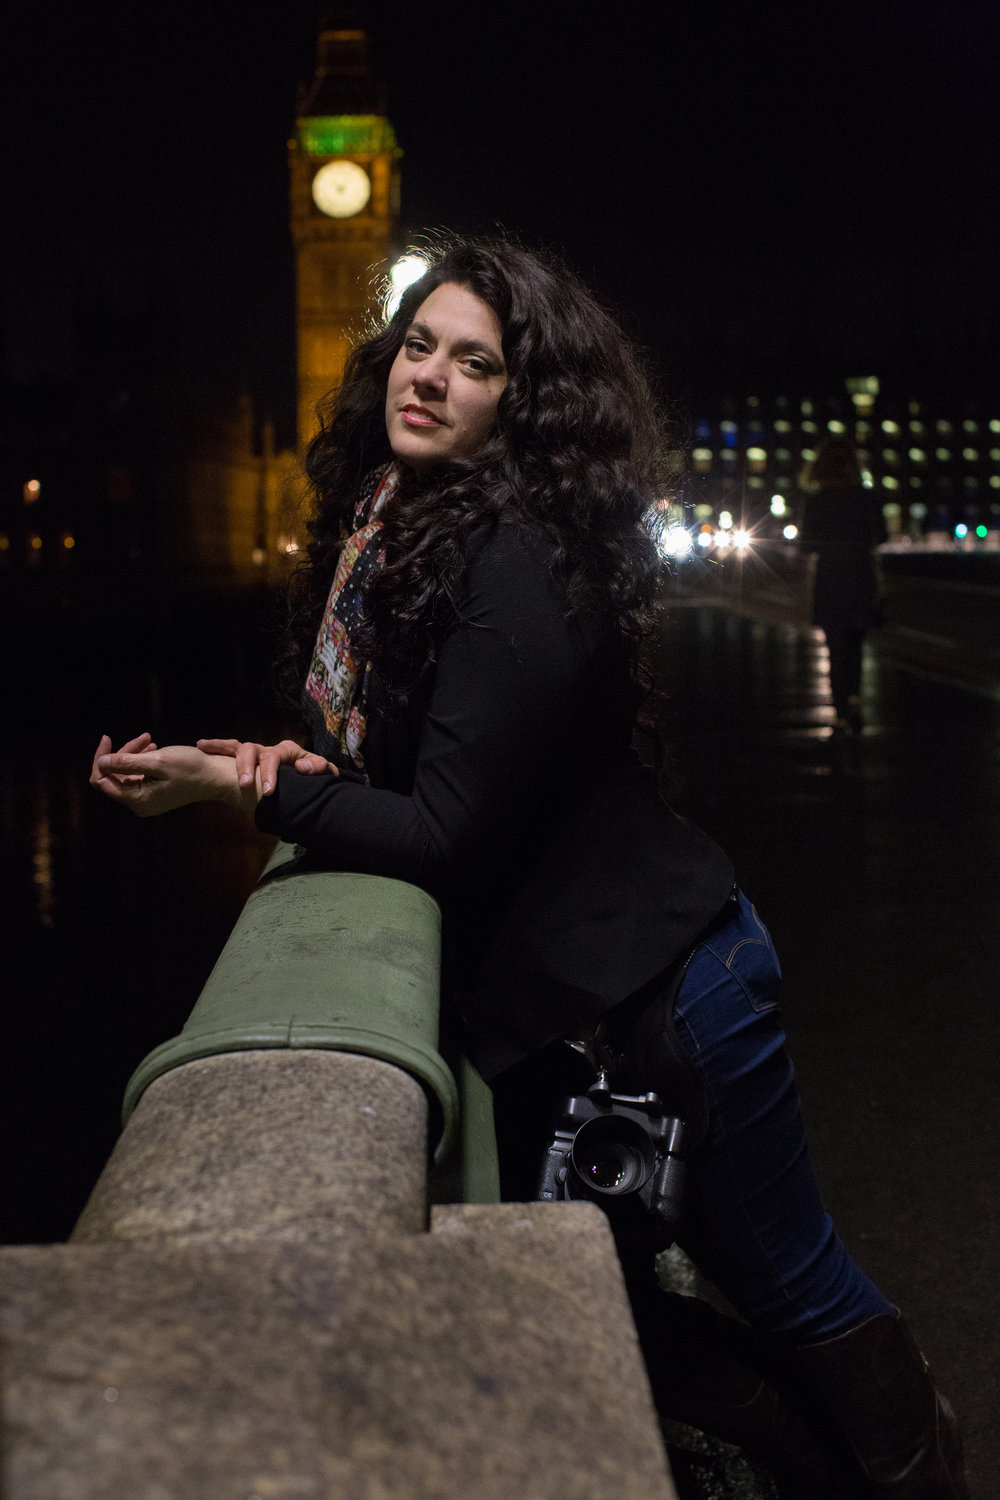 Cat Ford-Coates, Portrait Photographer.  Image courtesy of Corinne Hunsicker of Silverbox Creative Studios taken on the Westminster Bridge in London